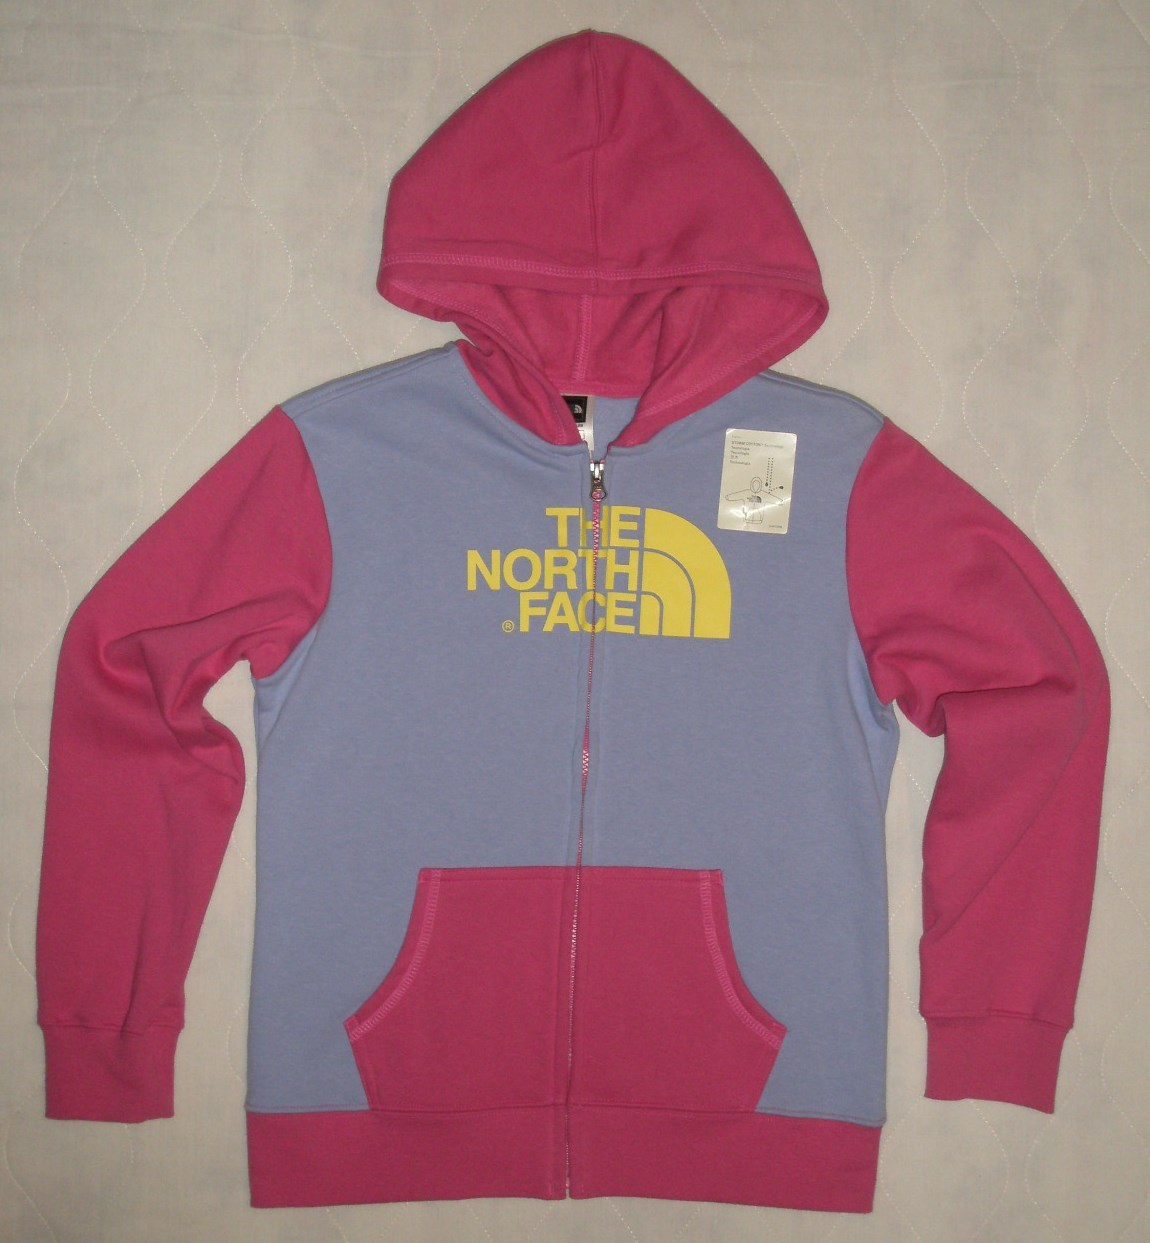 e03dccda176c9 New The North Face Full Zip Hoodie and 50 similar items